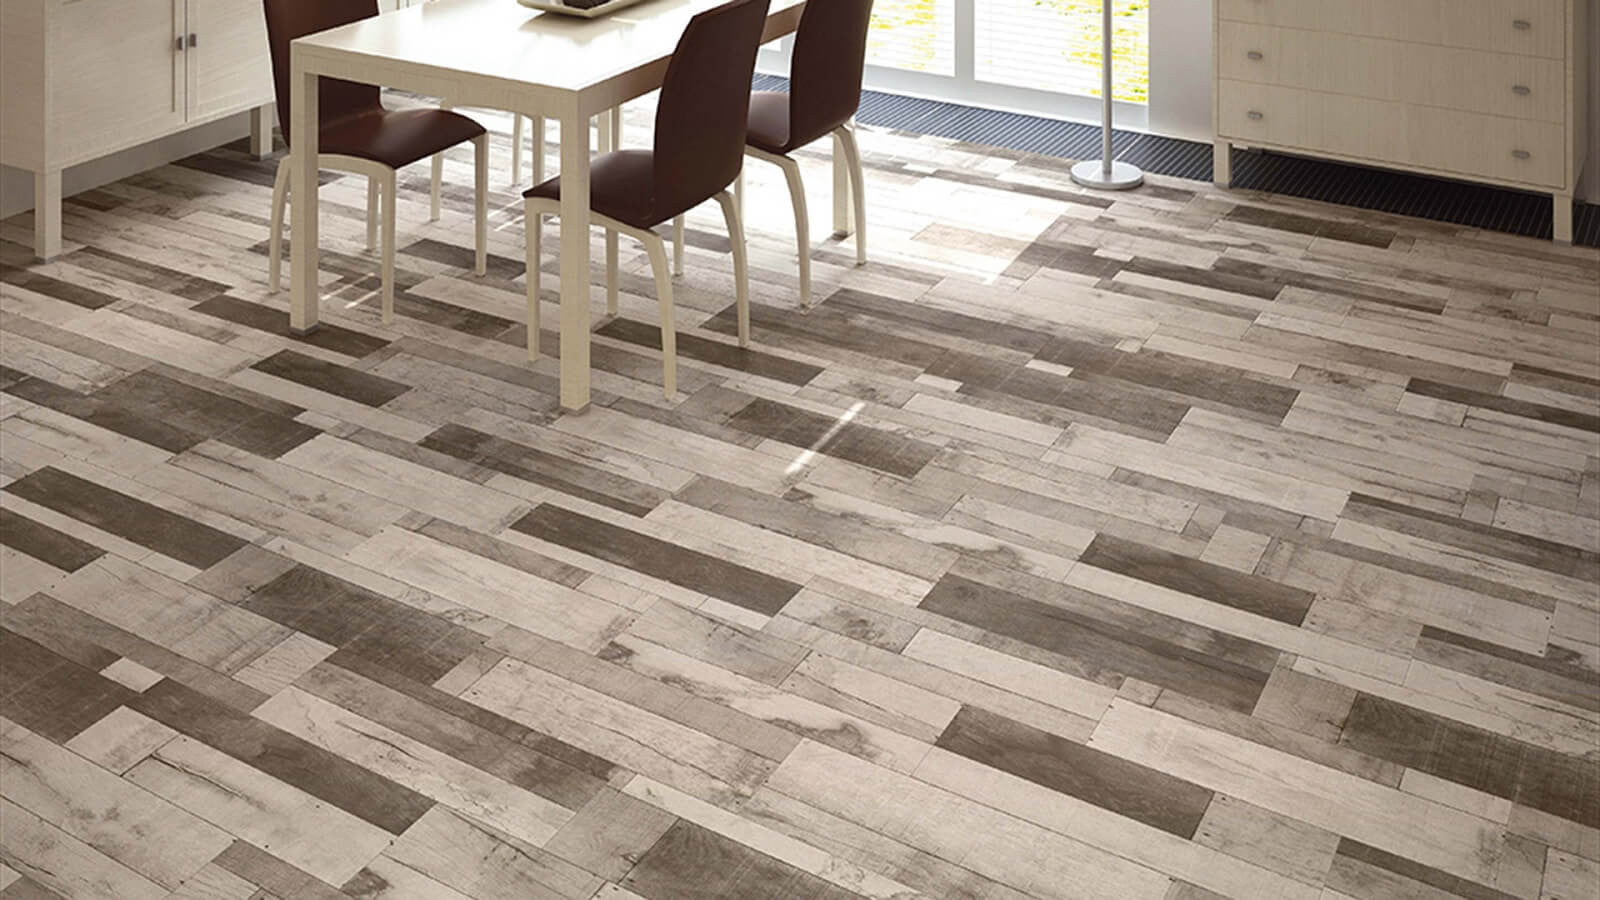 Wood effect floor tiles by spains azulindus to transform your home madera grey wood effect tiles on kitchen floor with table and chairs doublecrazyfo Image collections